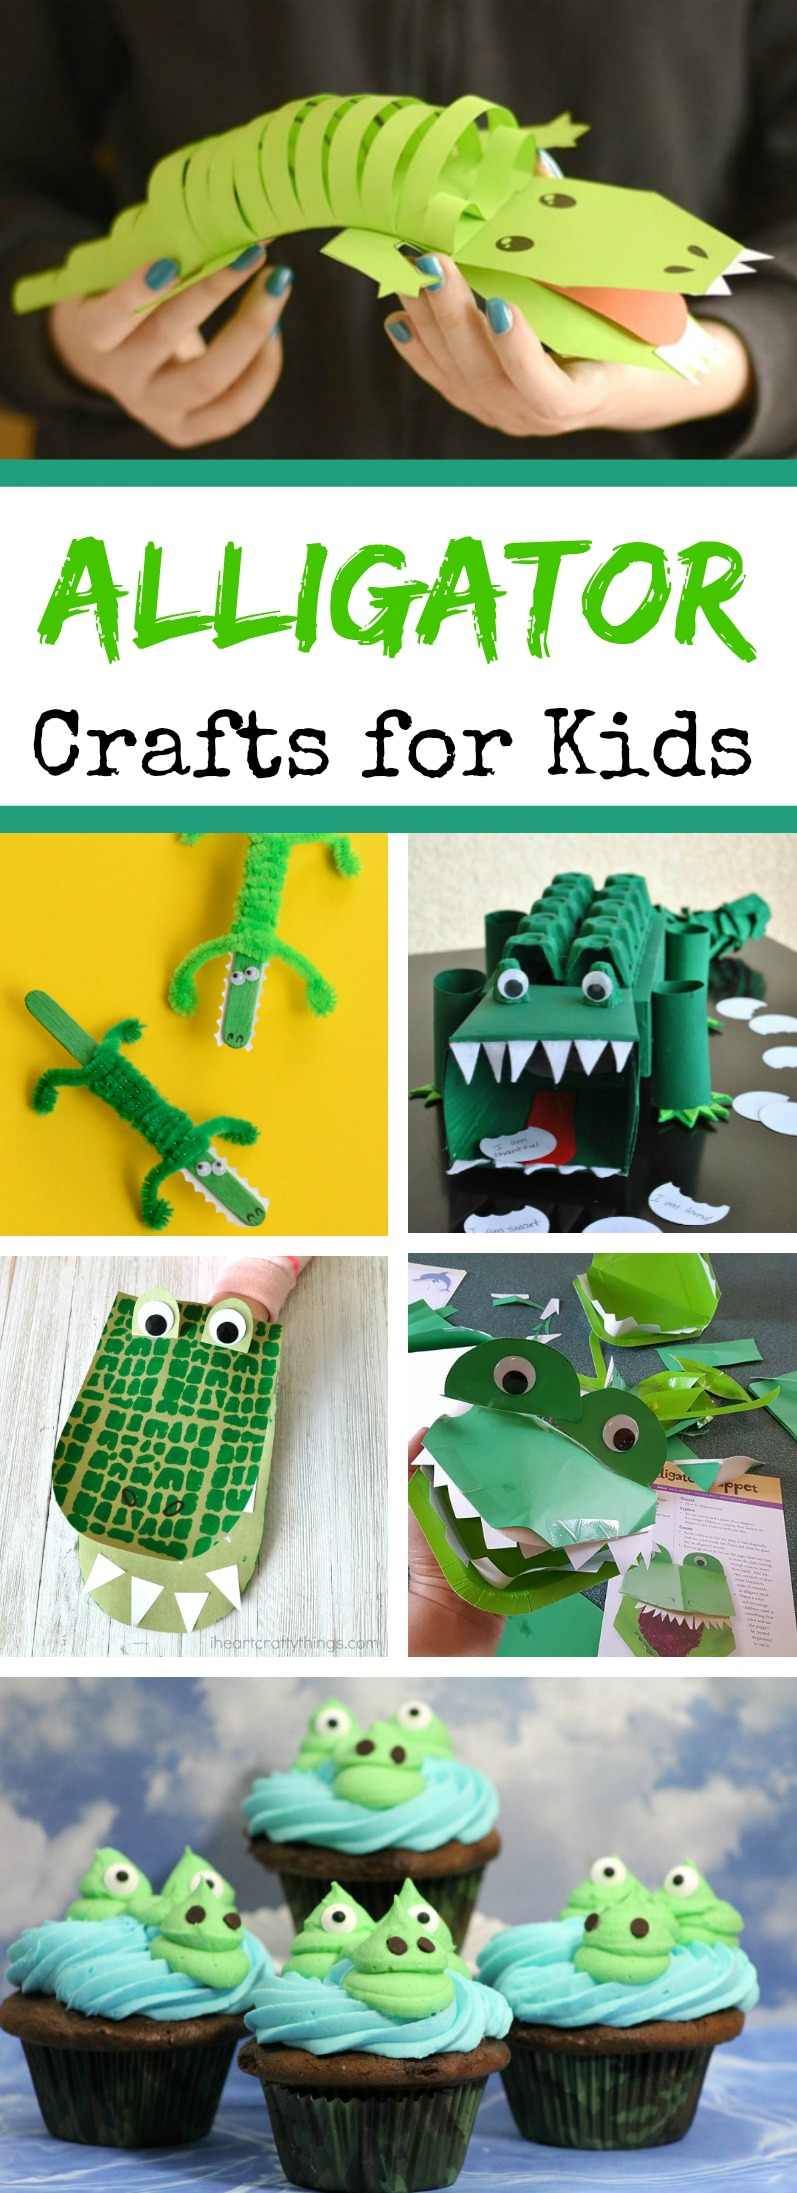 Alligator Crafts For Kids 8 Exciting Alligator Craft